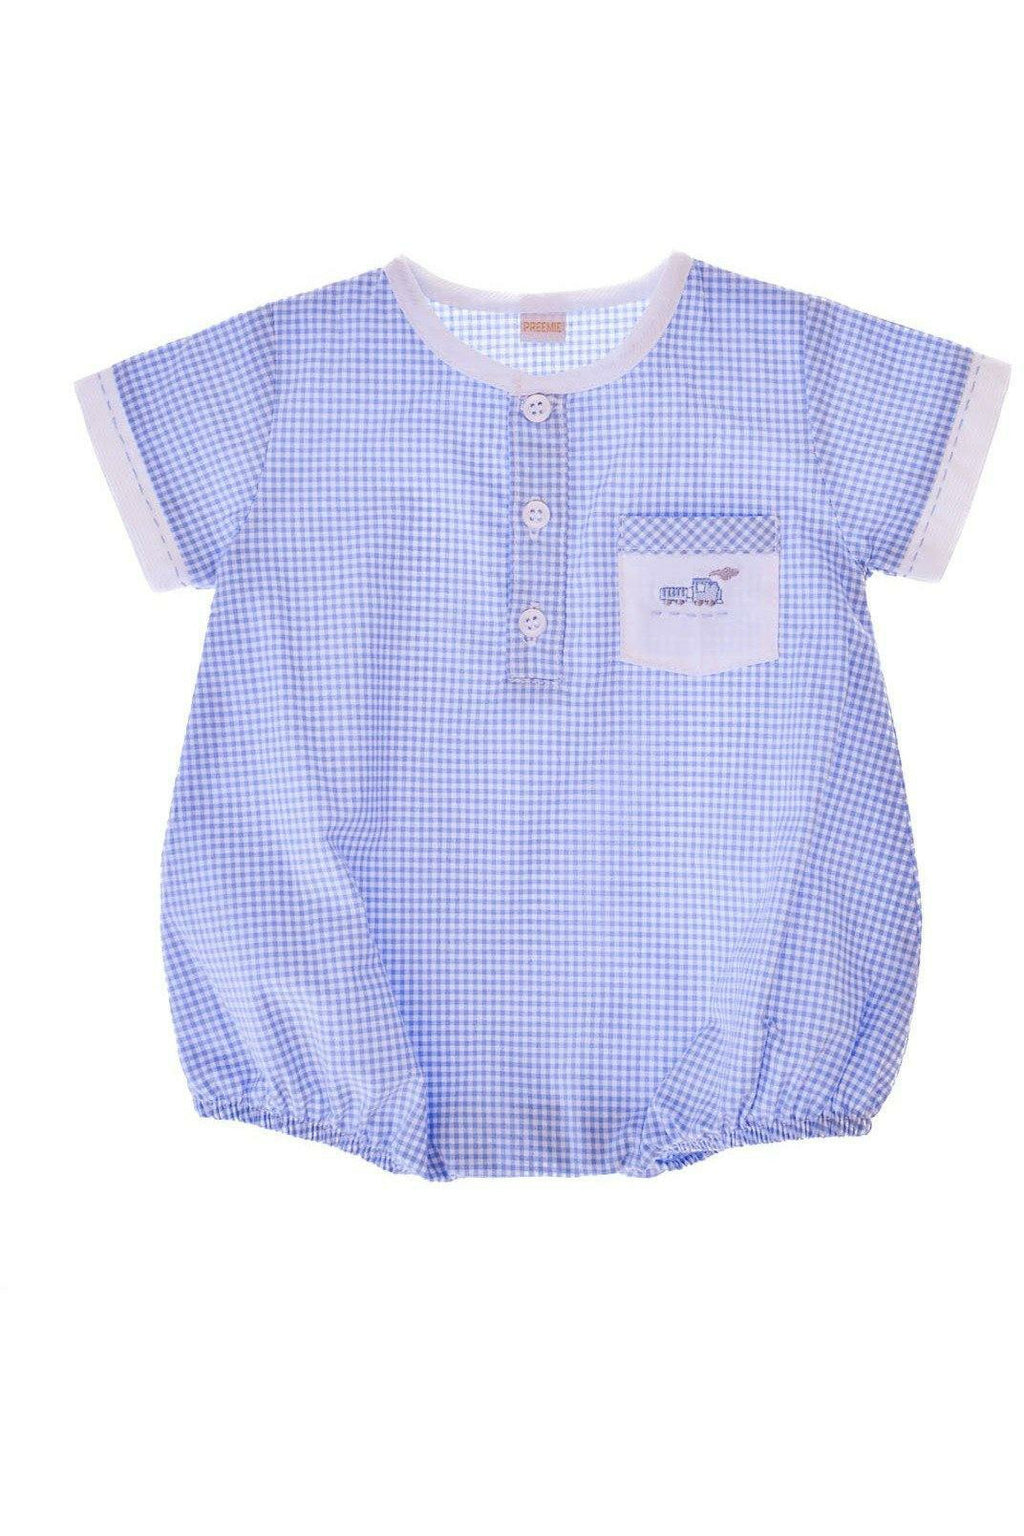 Baby Boy Hand Embroidered Creeper Romper - Blue Train [product_tags] - Carriage Boutique